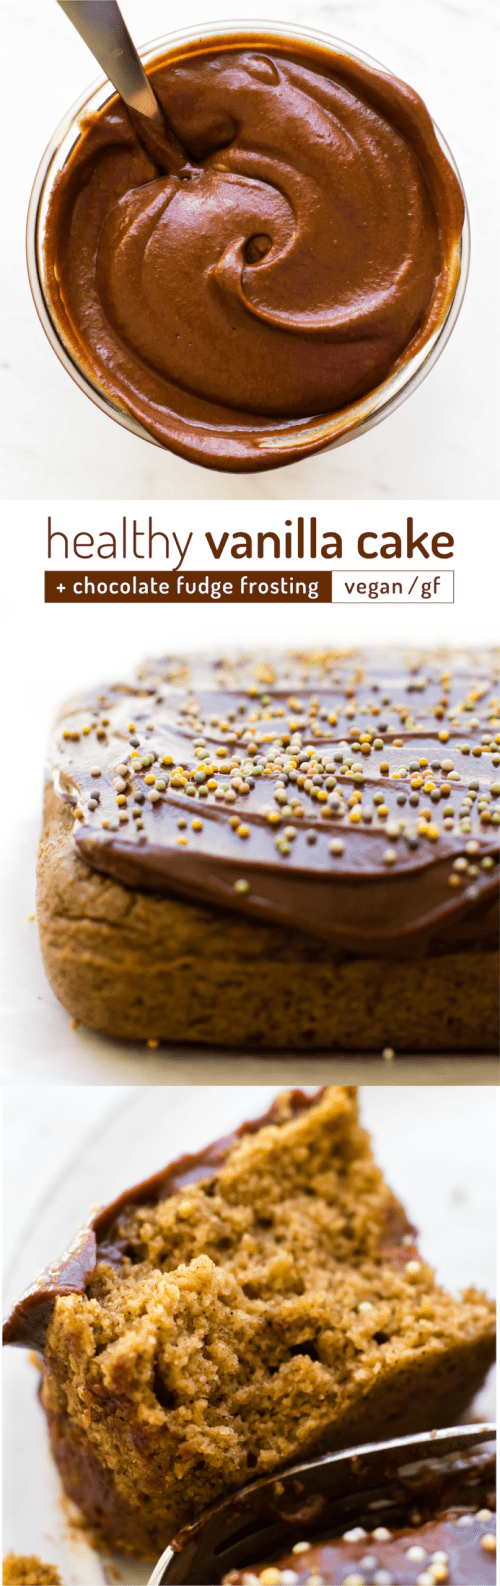 Healthy Vanilla Cake with Chocolate Fudge Frosting